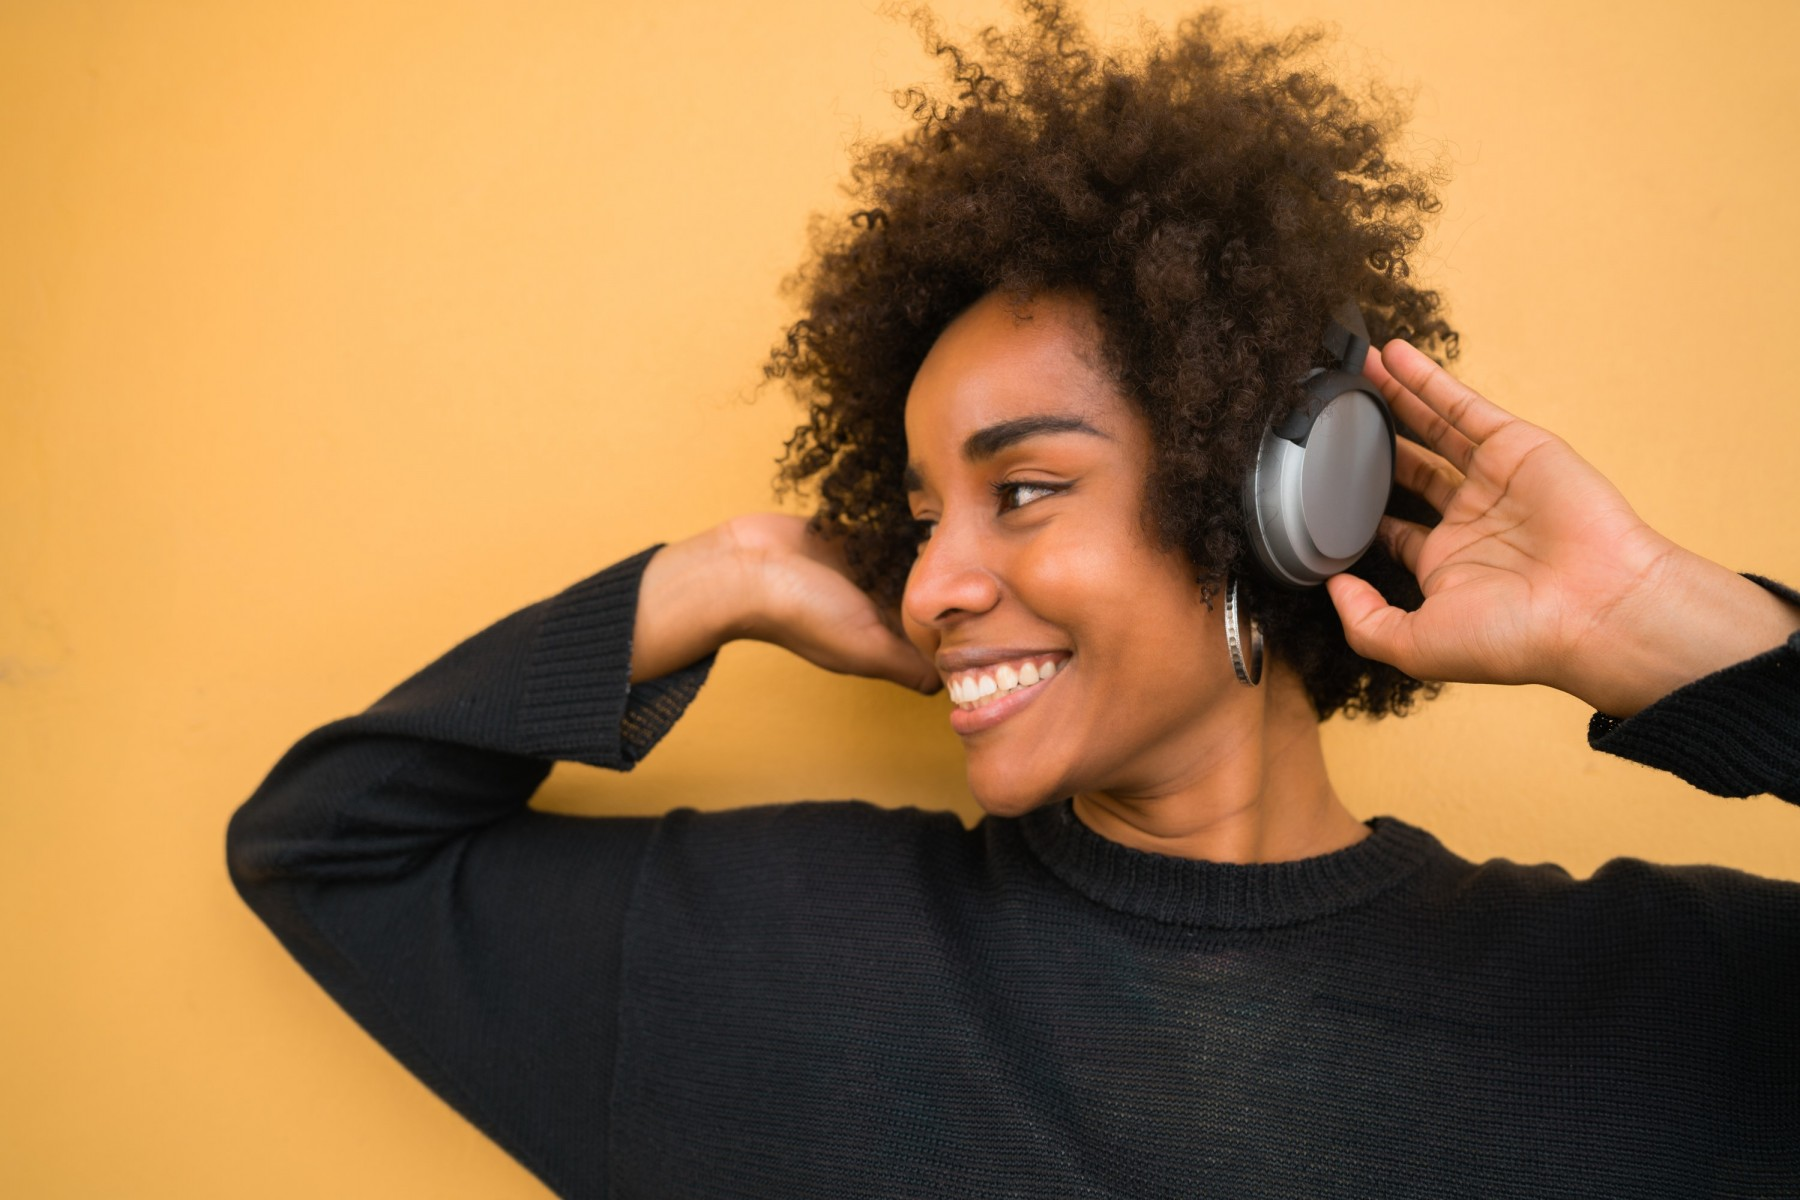 young-afro-woman-listening-to-music-with-headphone-2JEMH22